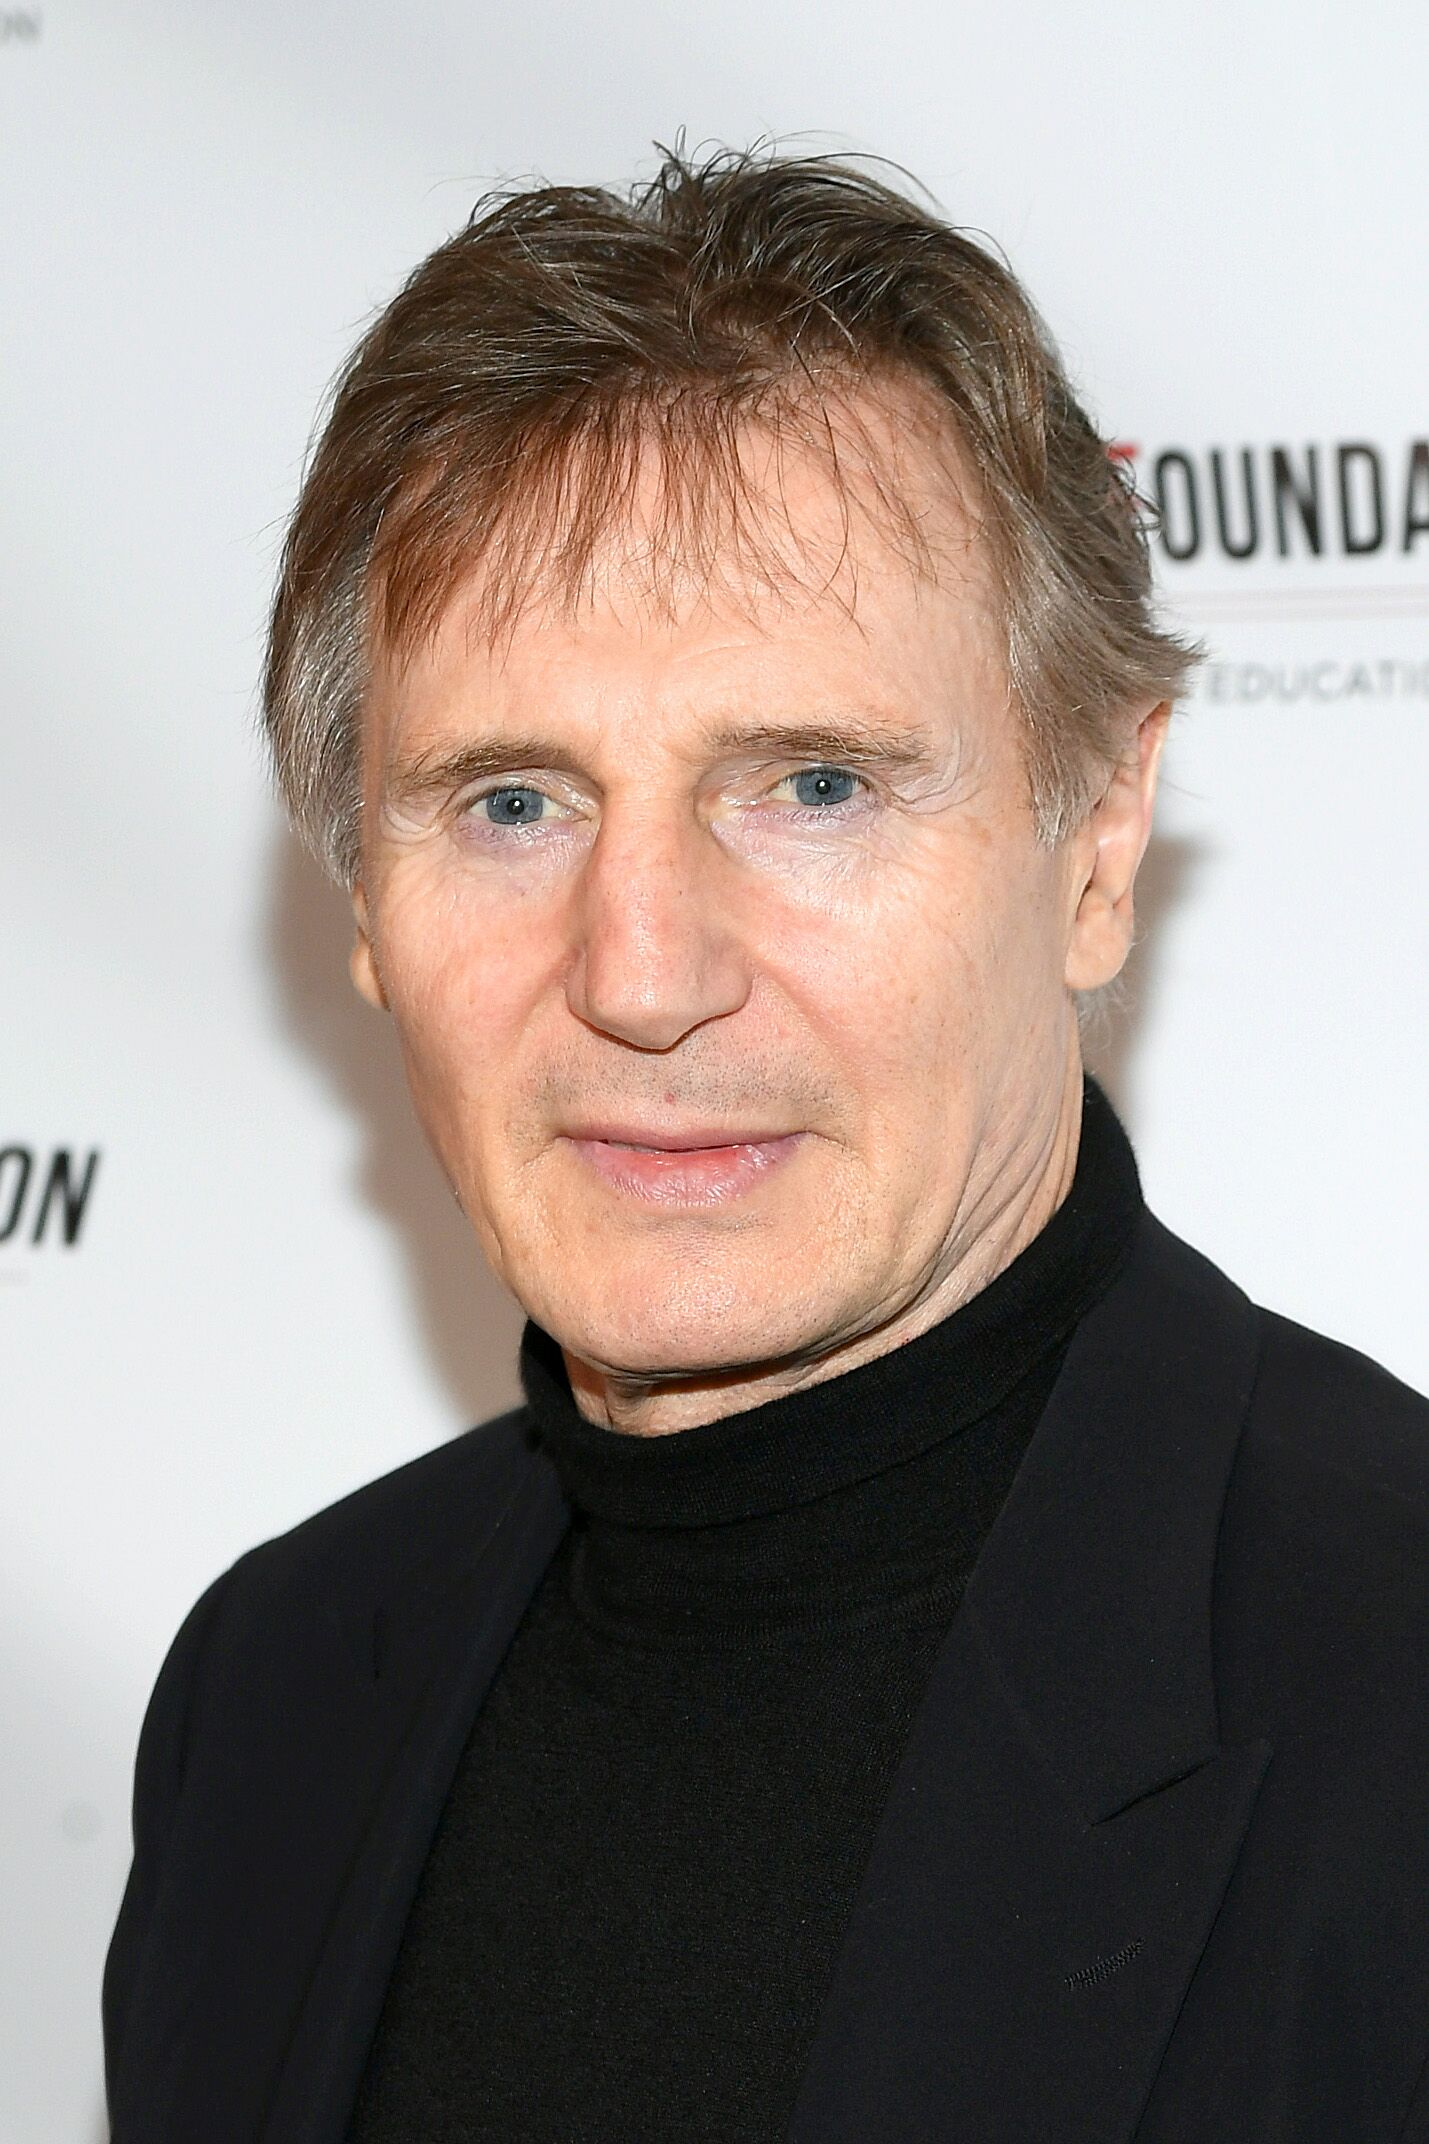 Liam Neeson at the 2018 Arthur Miller Foundation Honors | Getty Images